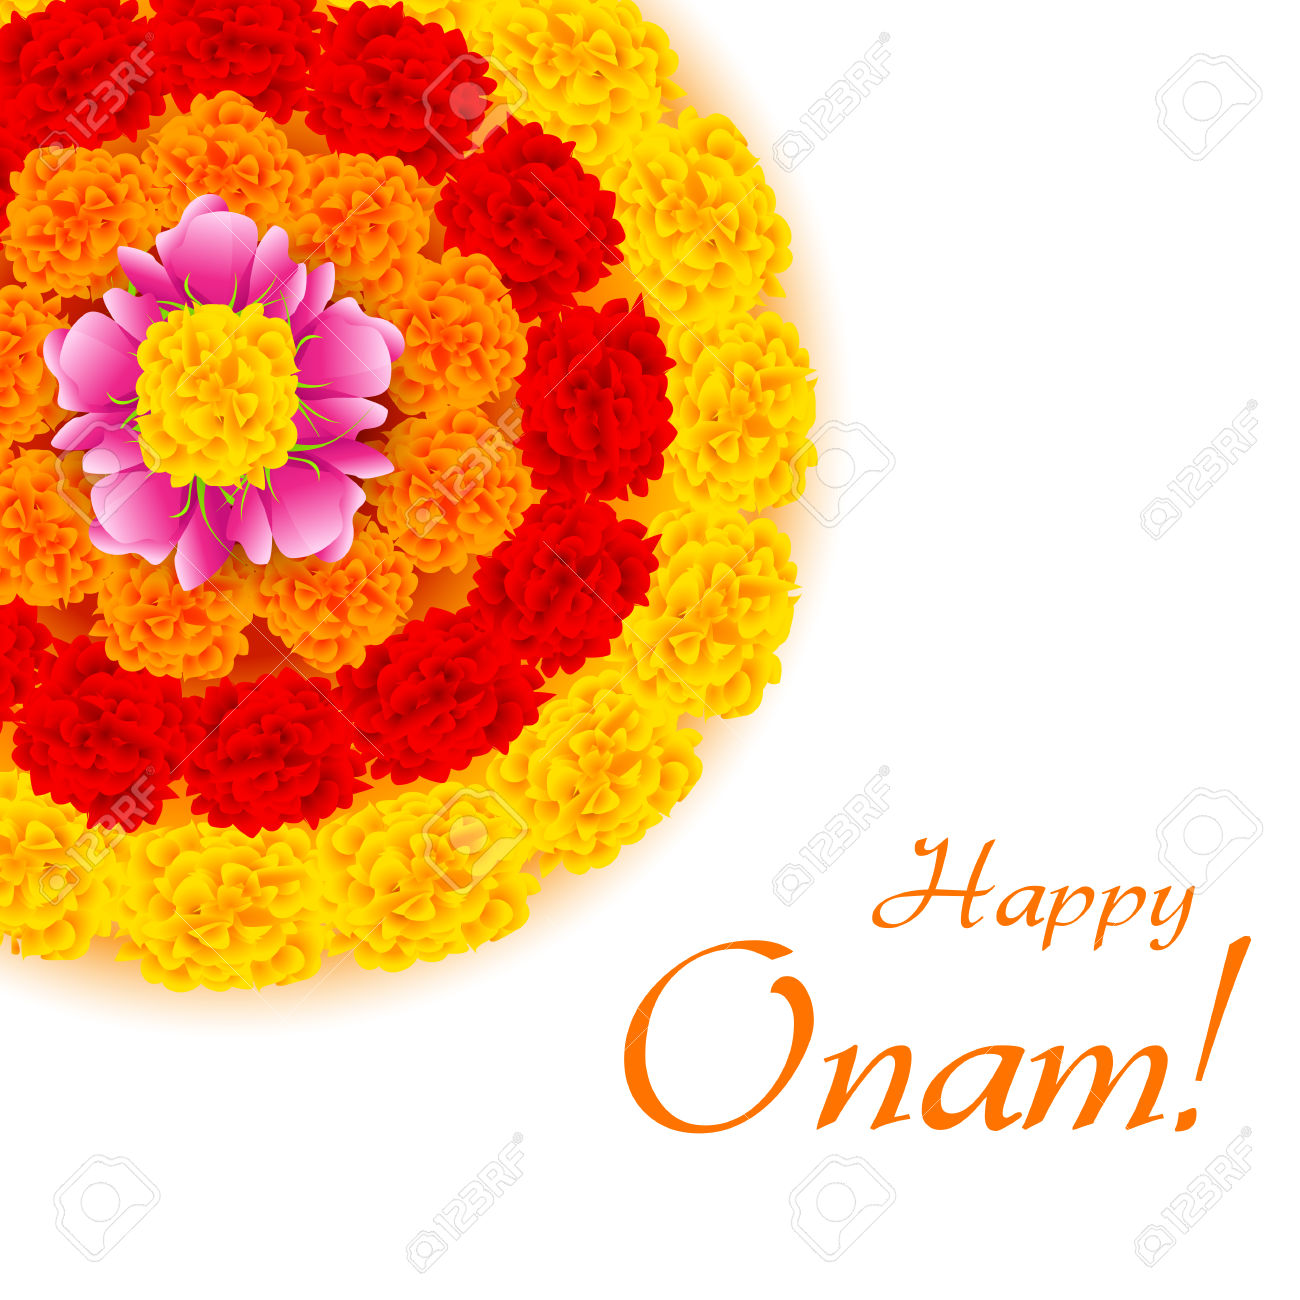 437 Onam Stock Illustrations, Cliparts And Royalty Free Onam Vectors.